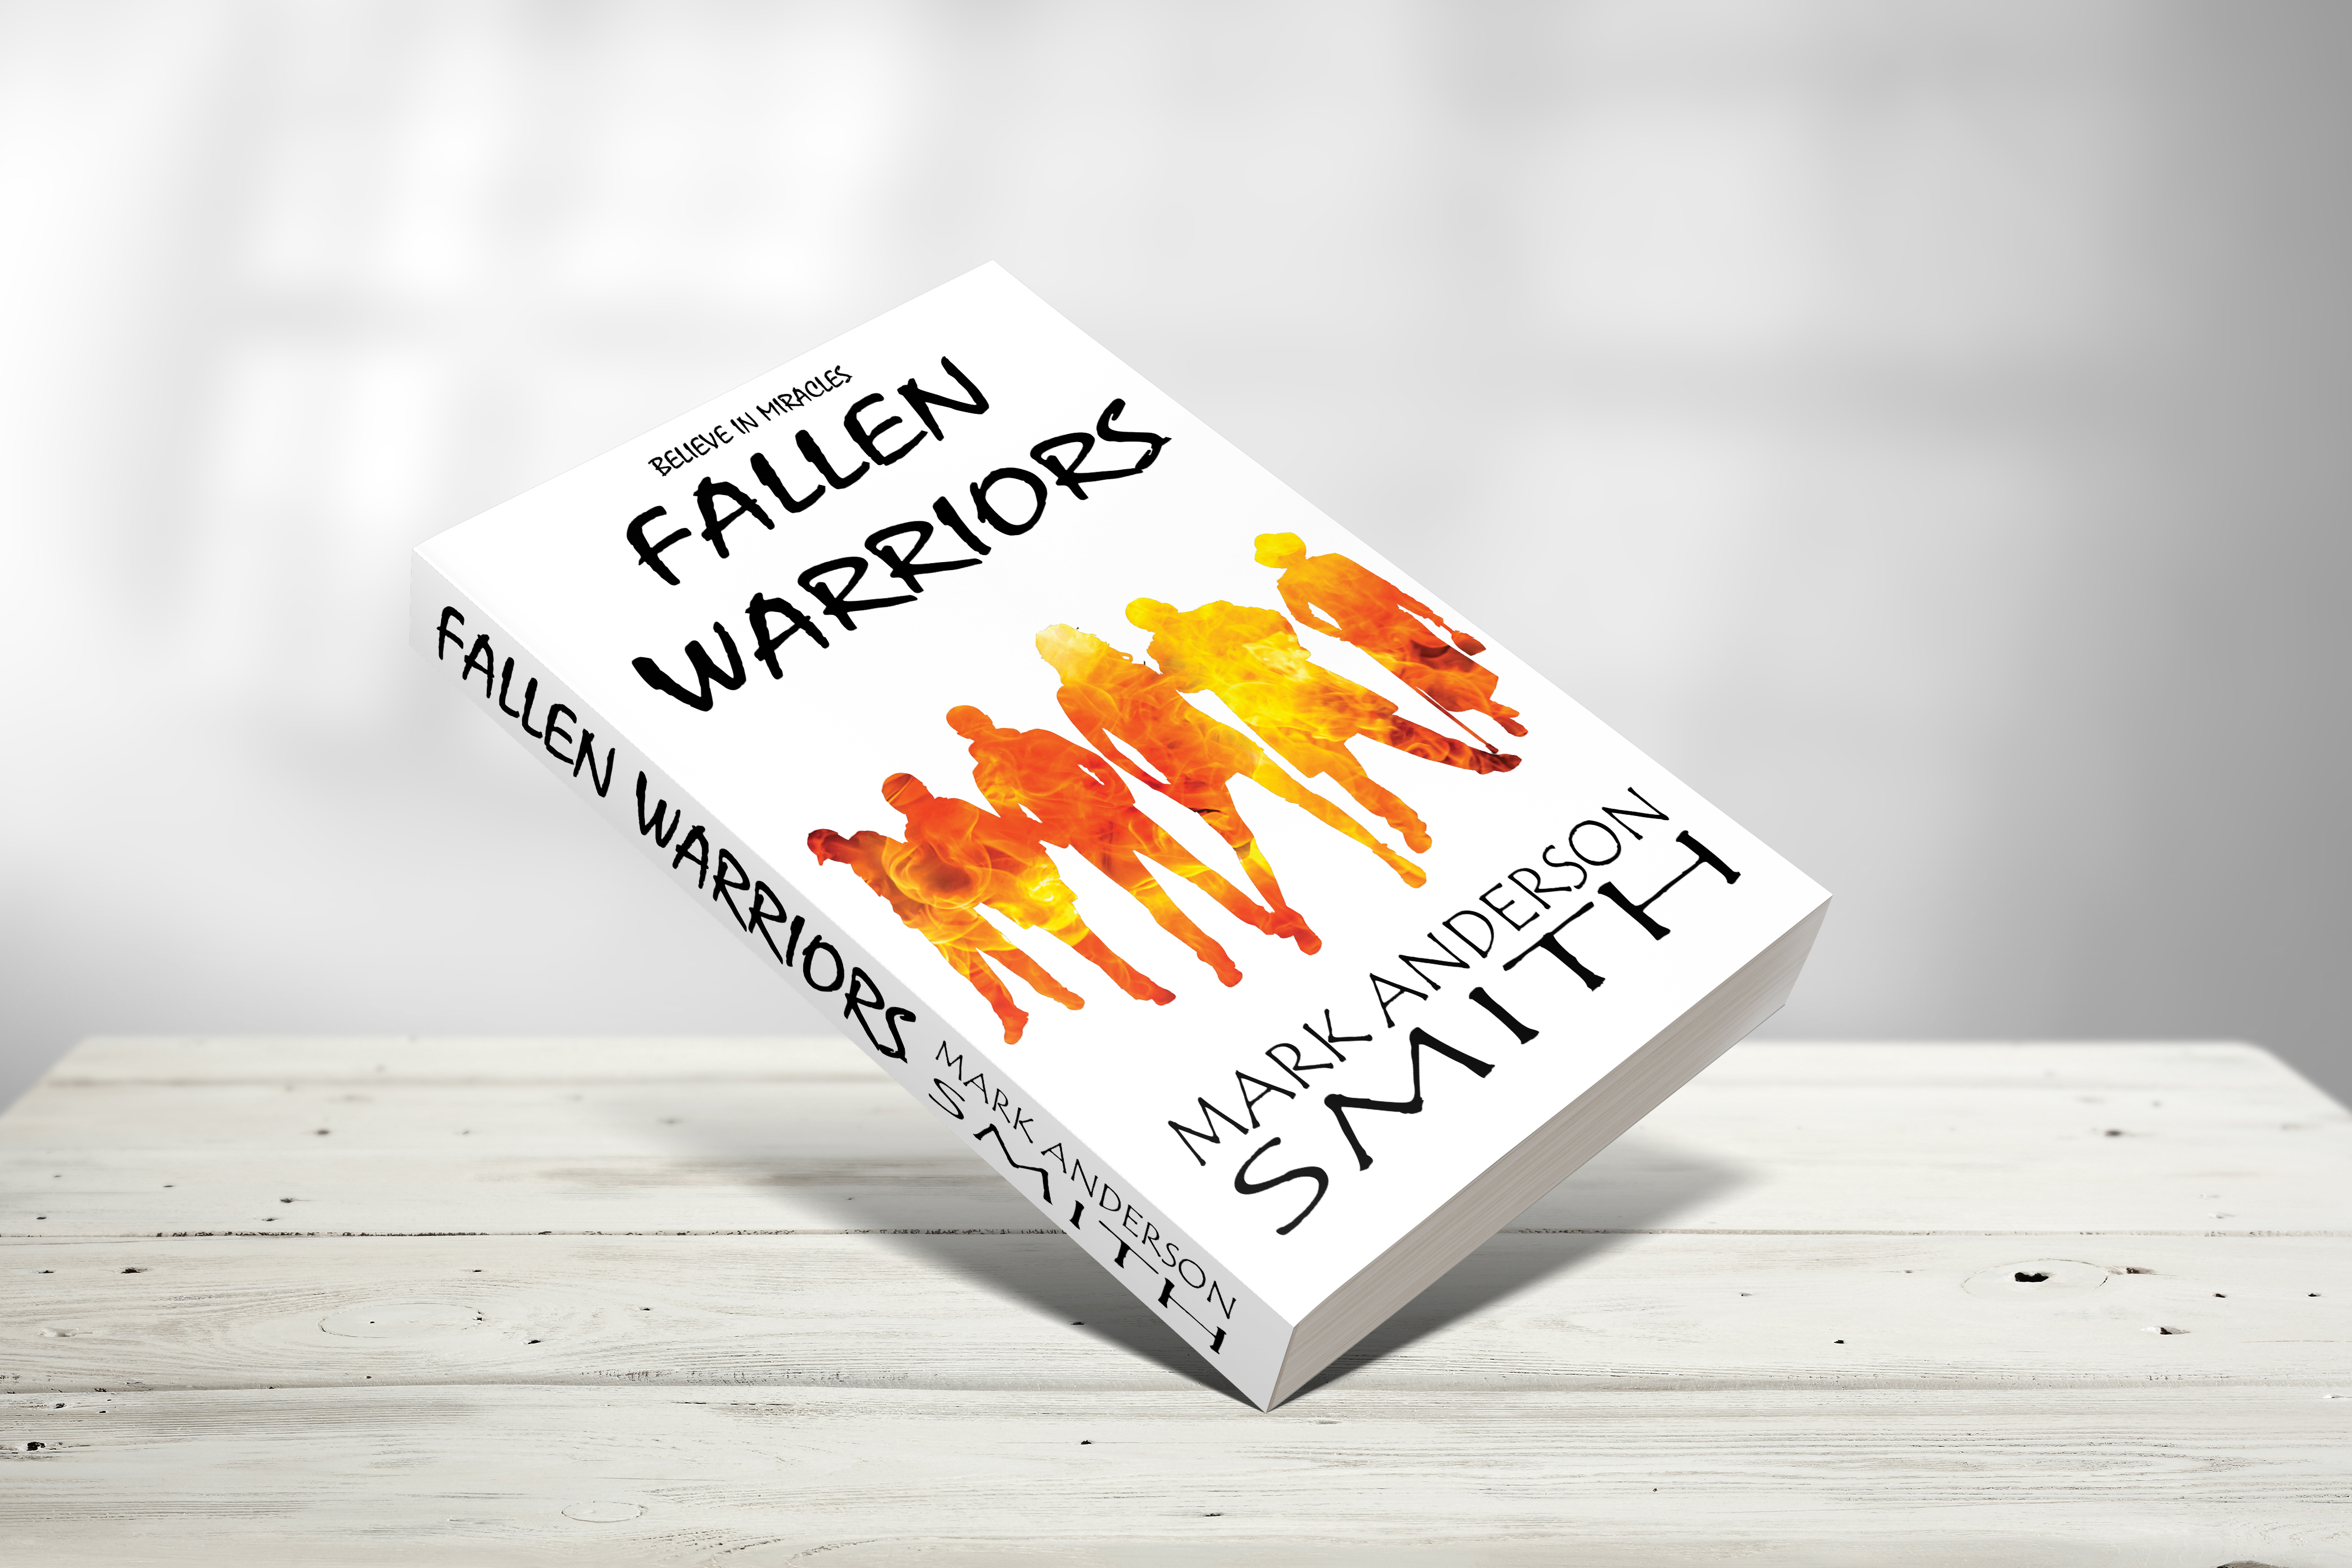 Fallen Warriors Book